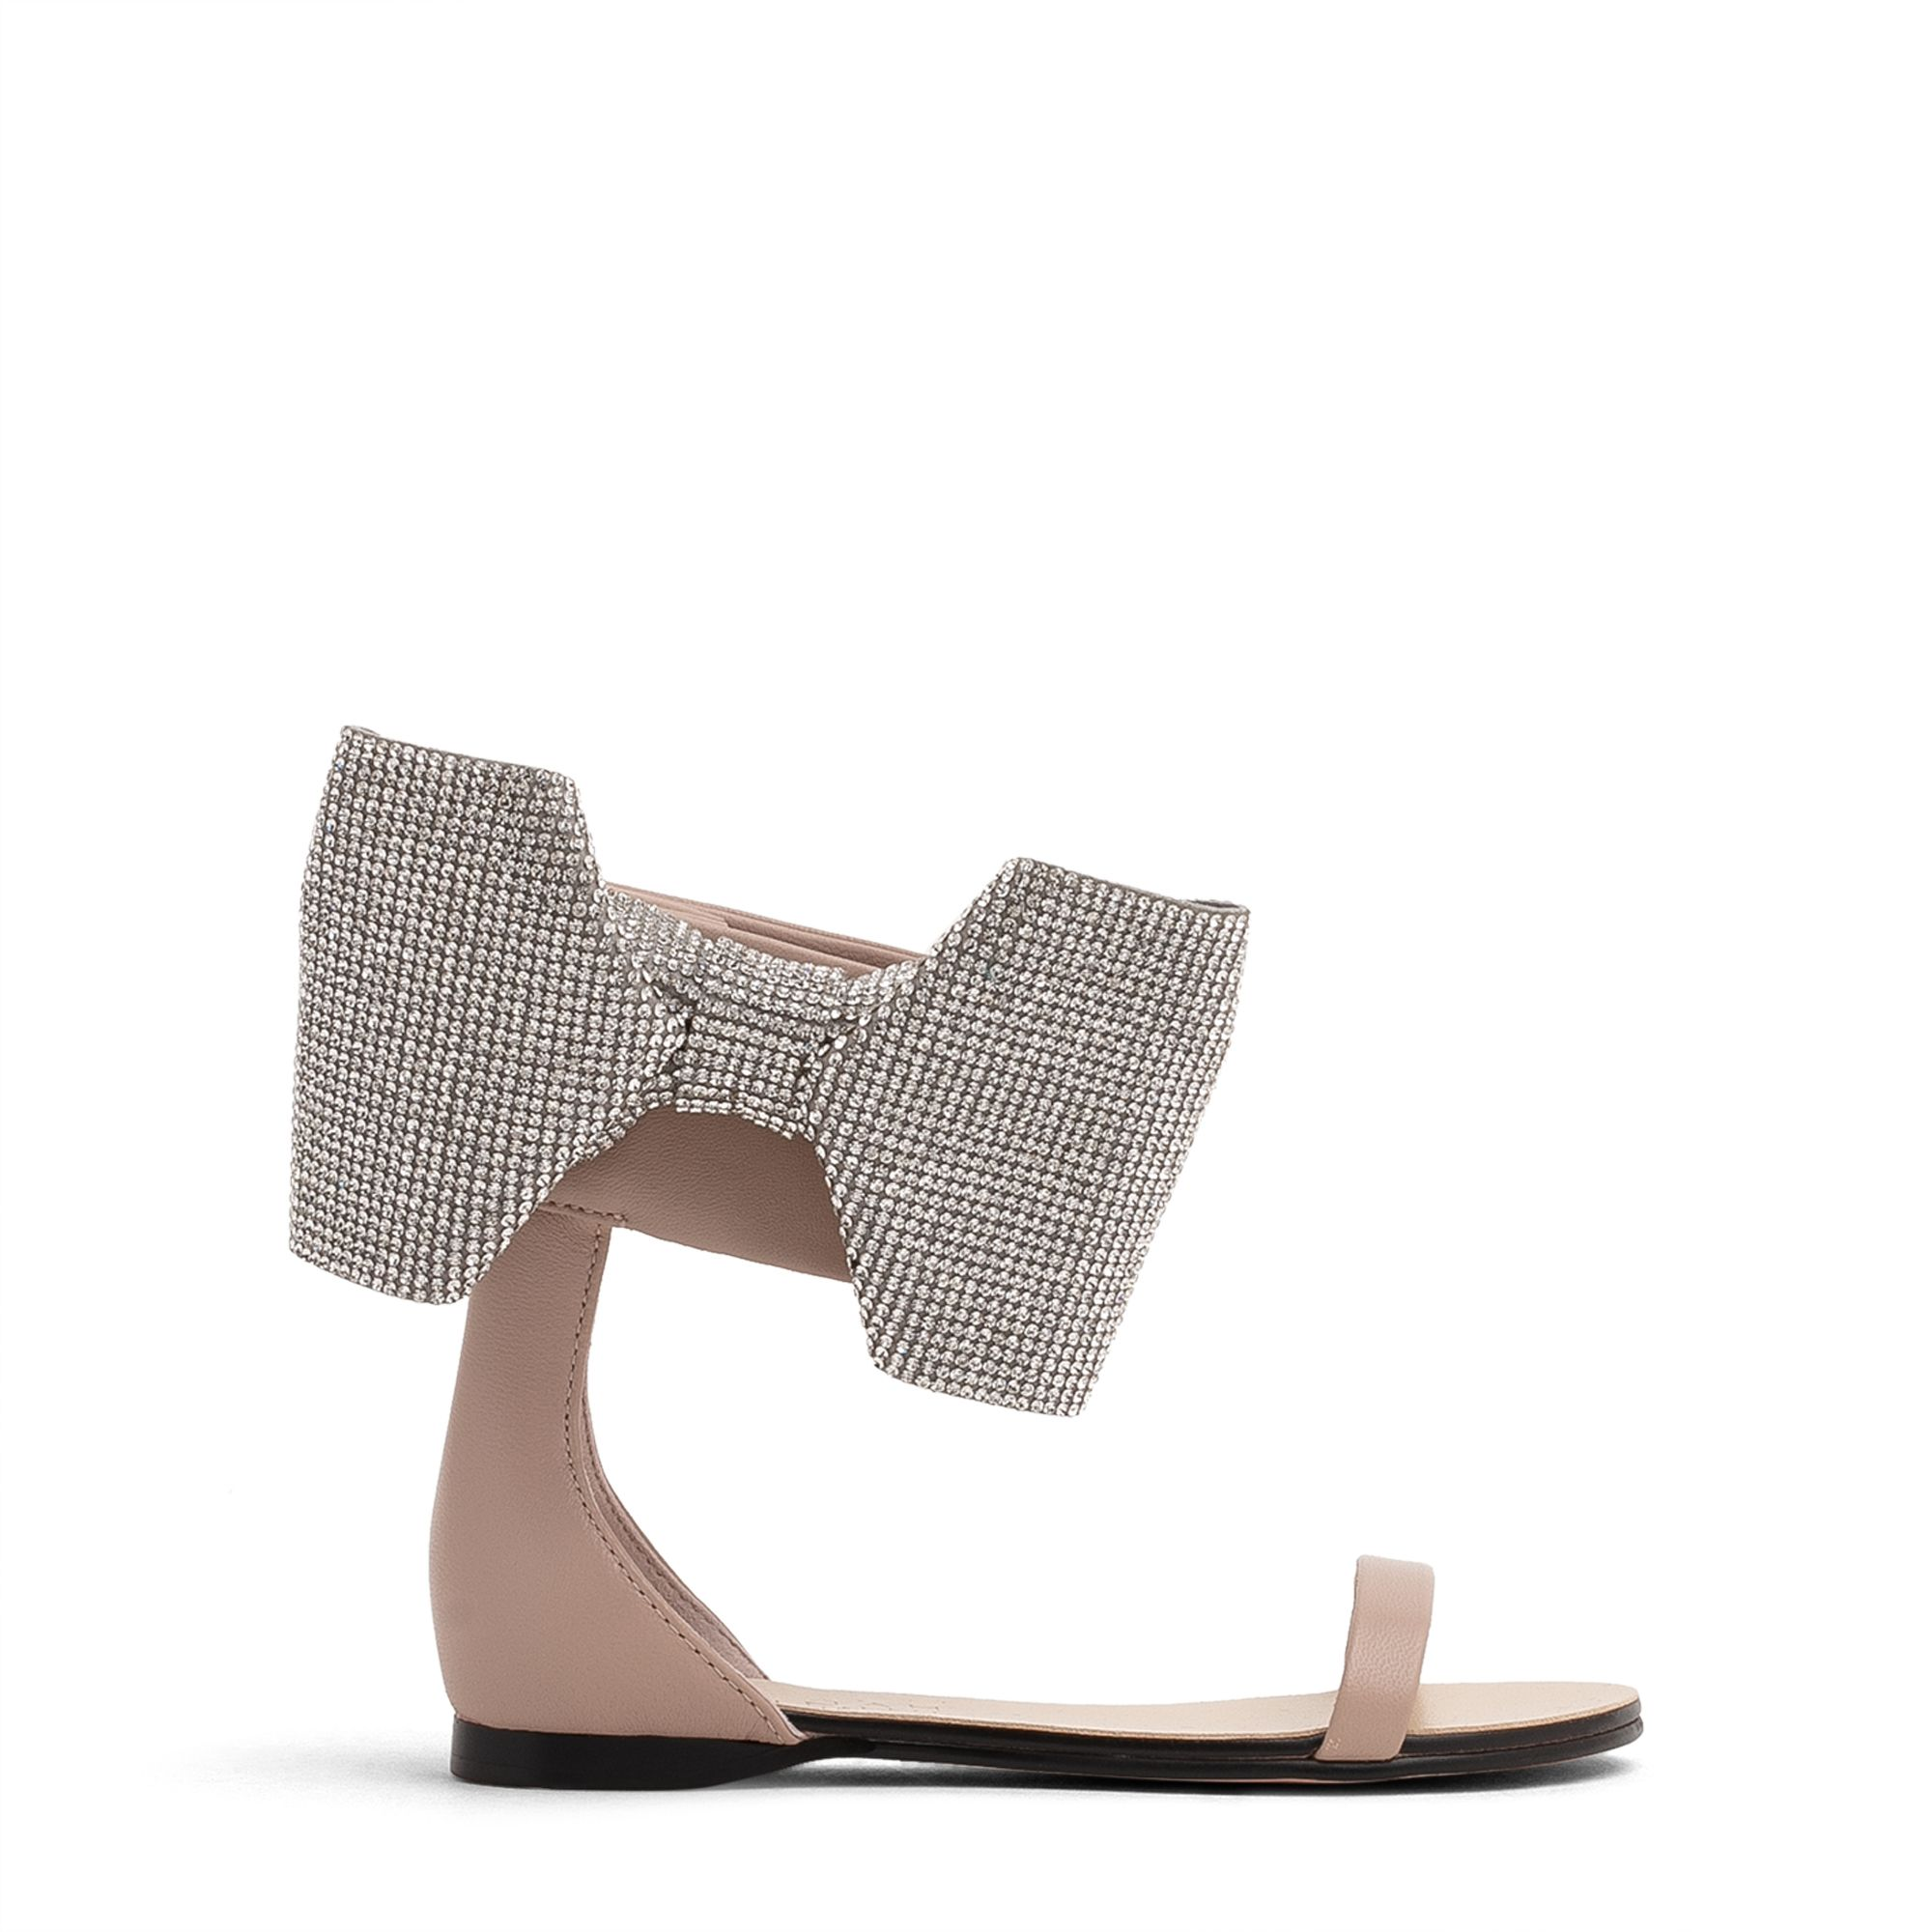 Zoey bow sandals